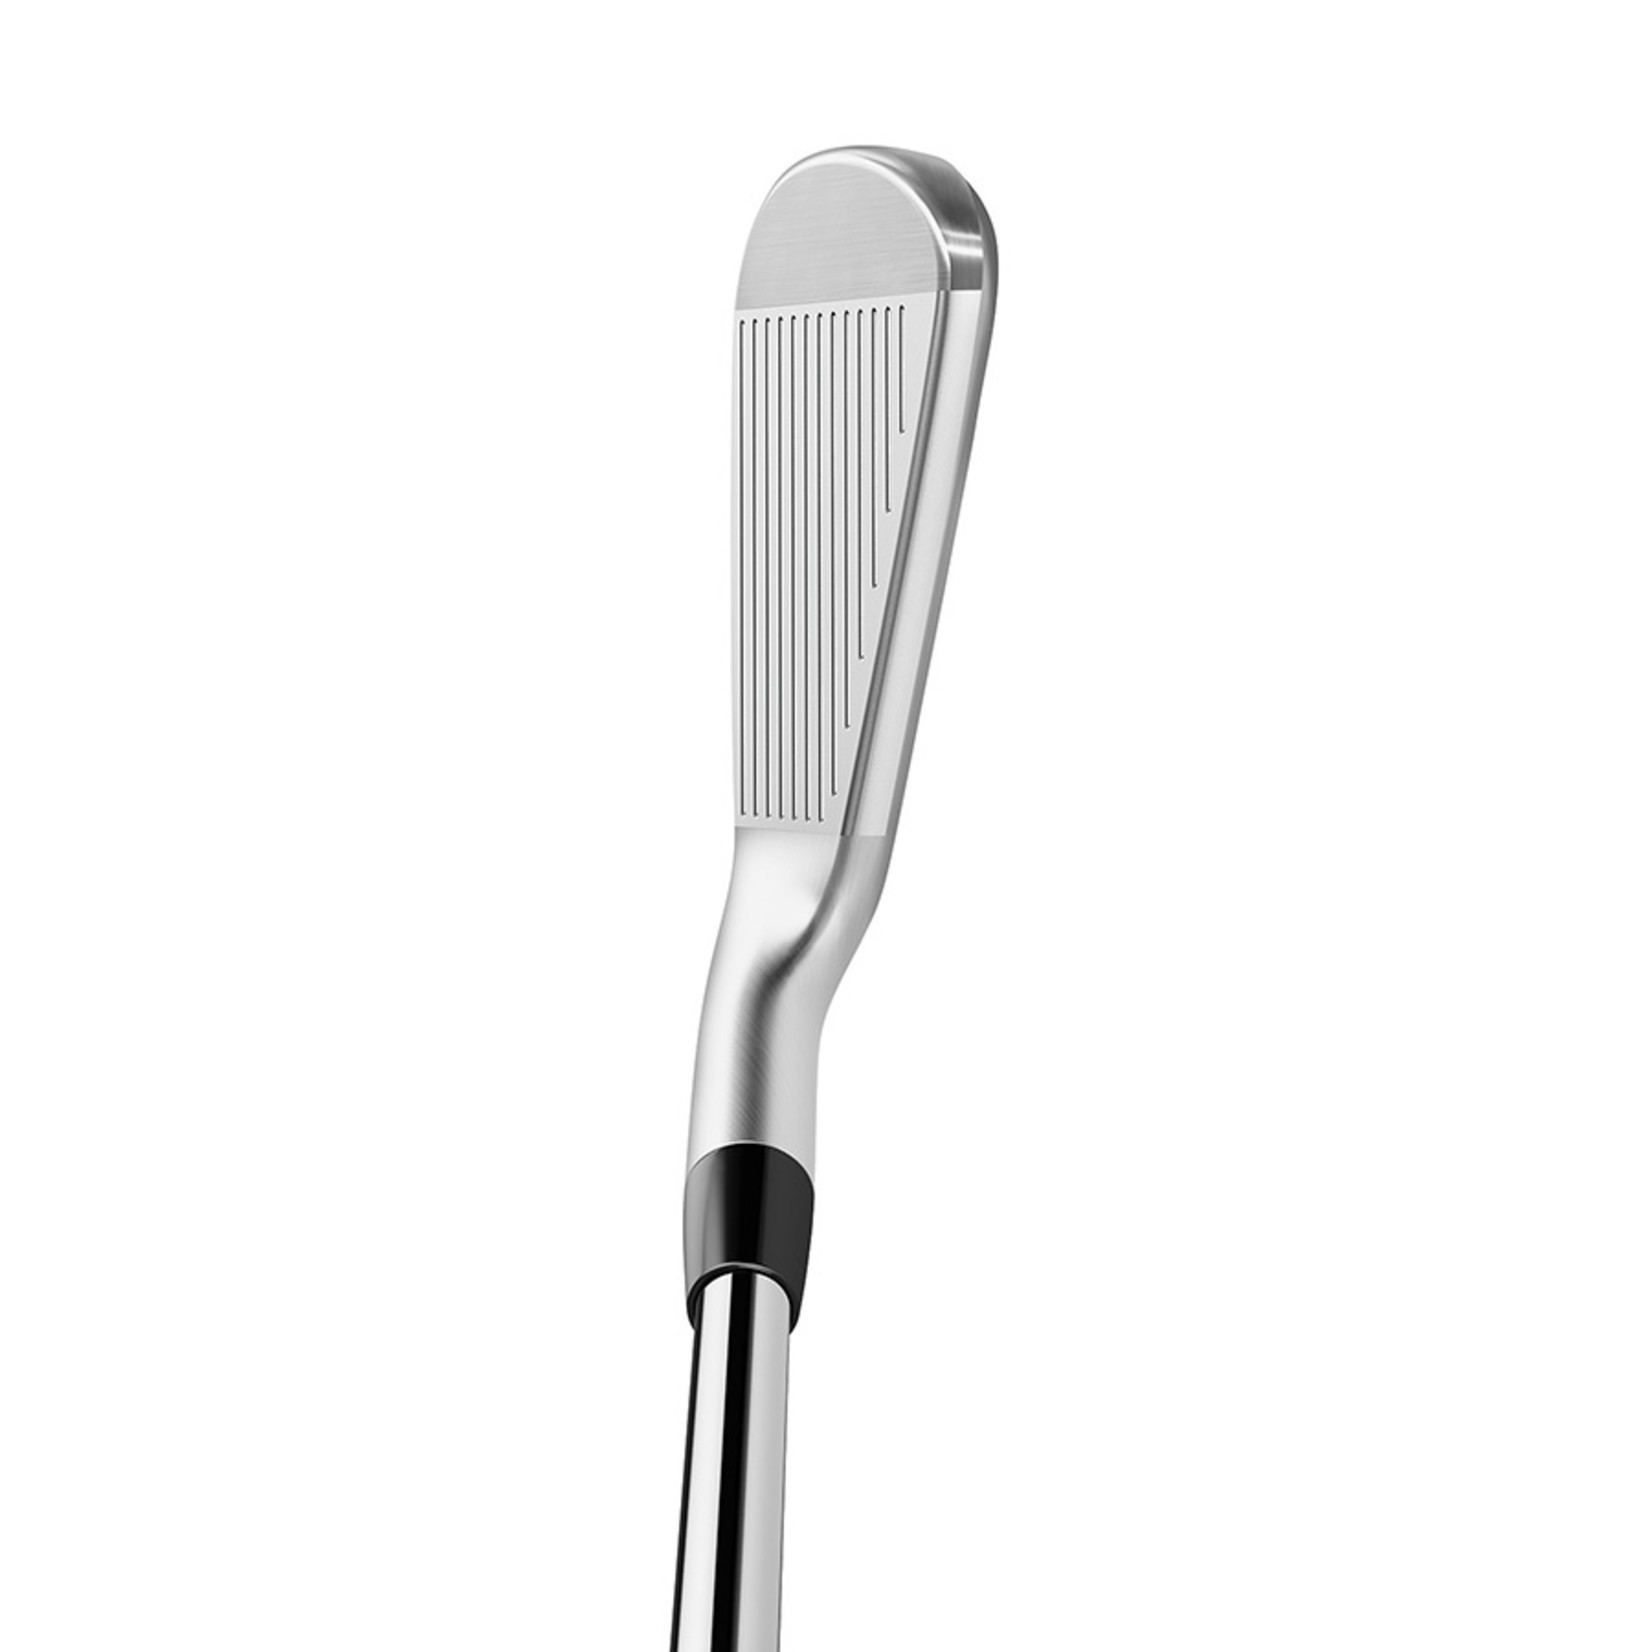 TaylorMade P790 Irons 7pc. - Steel